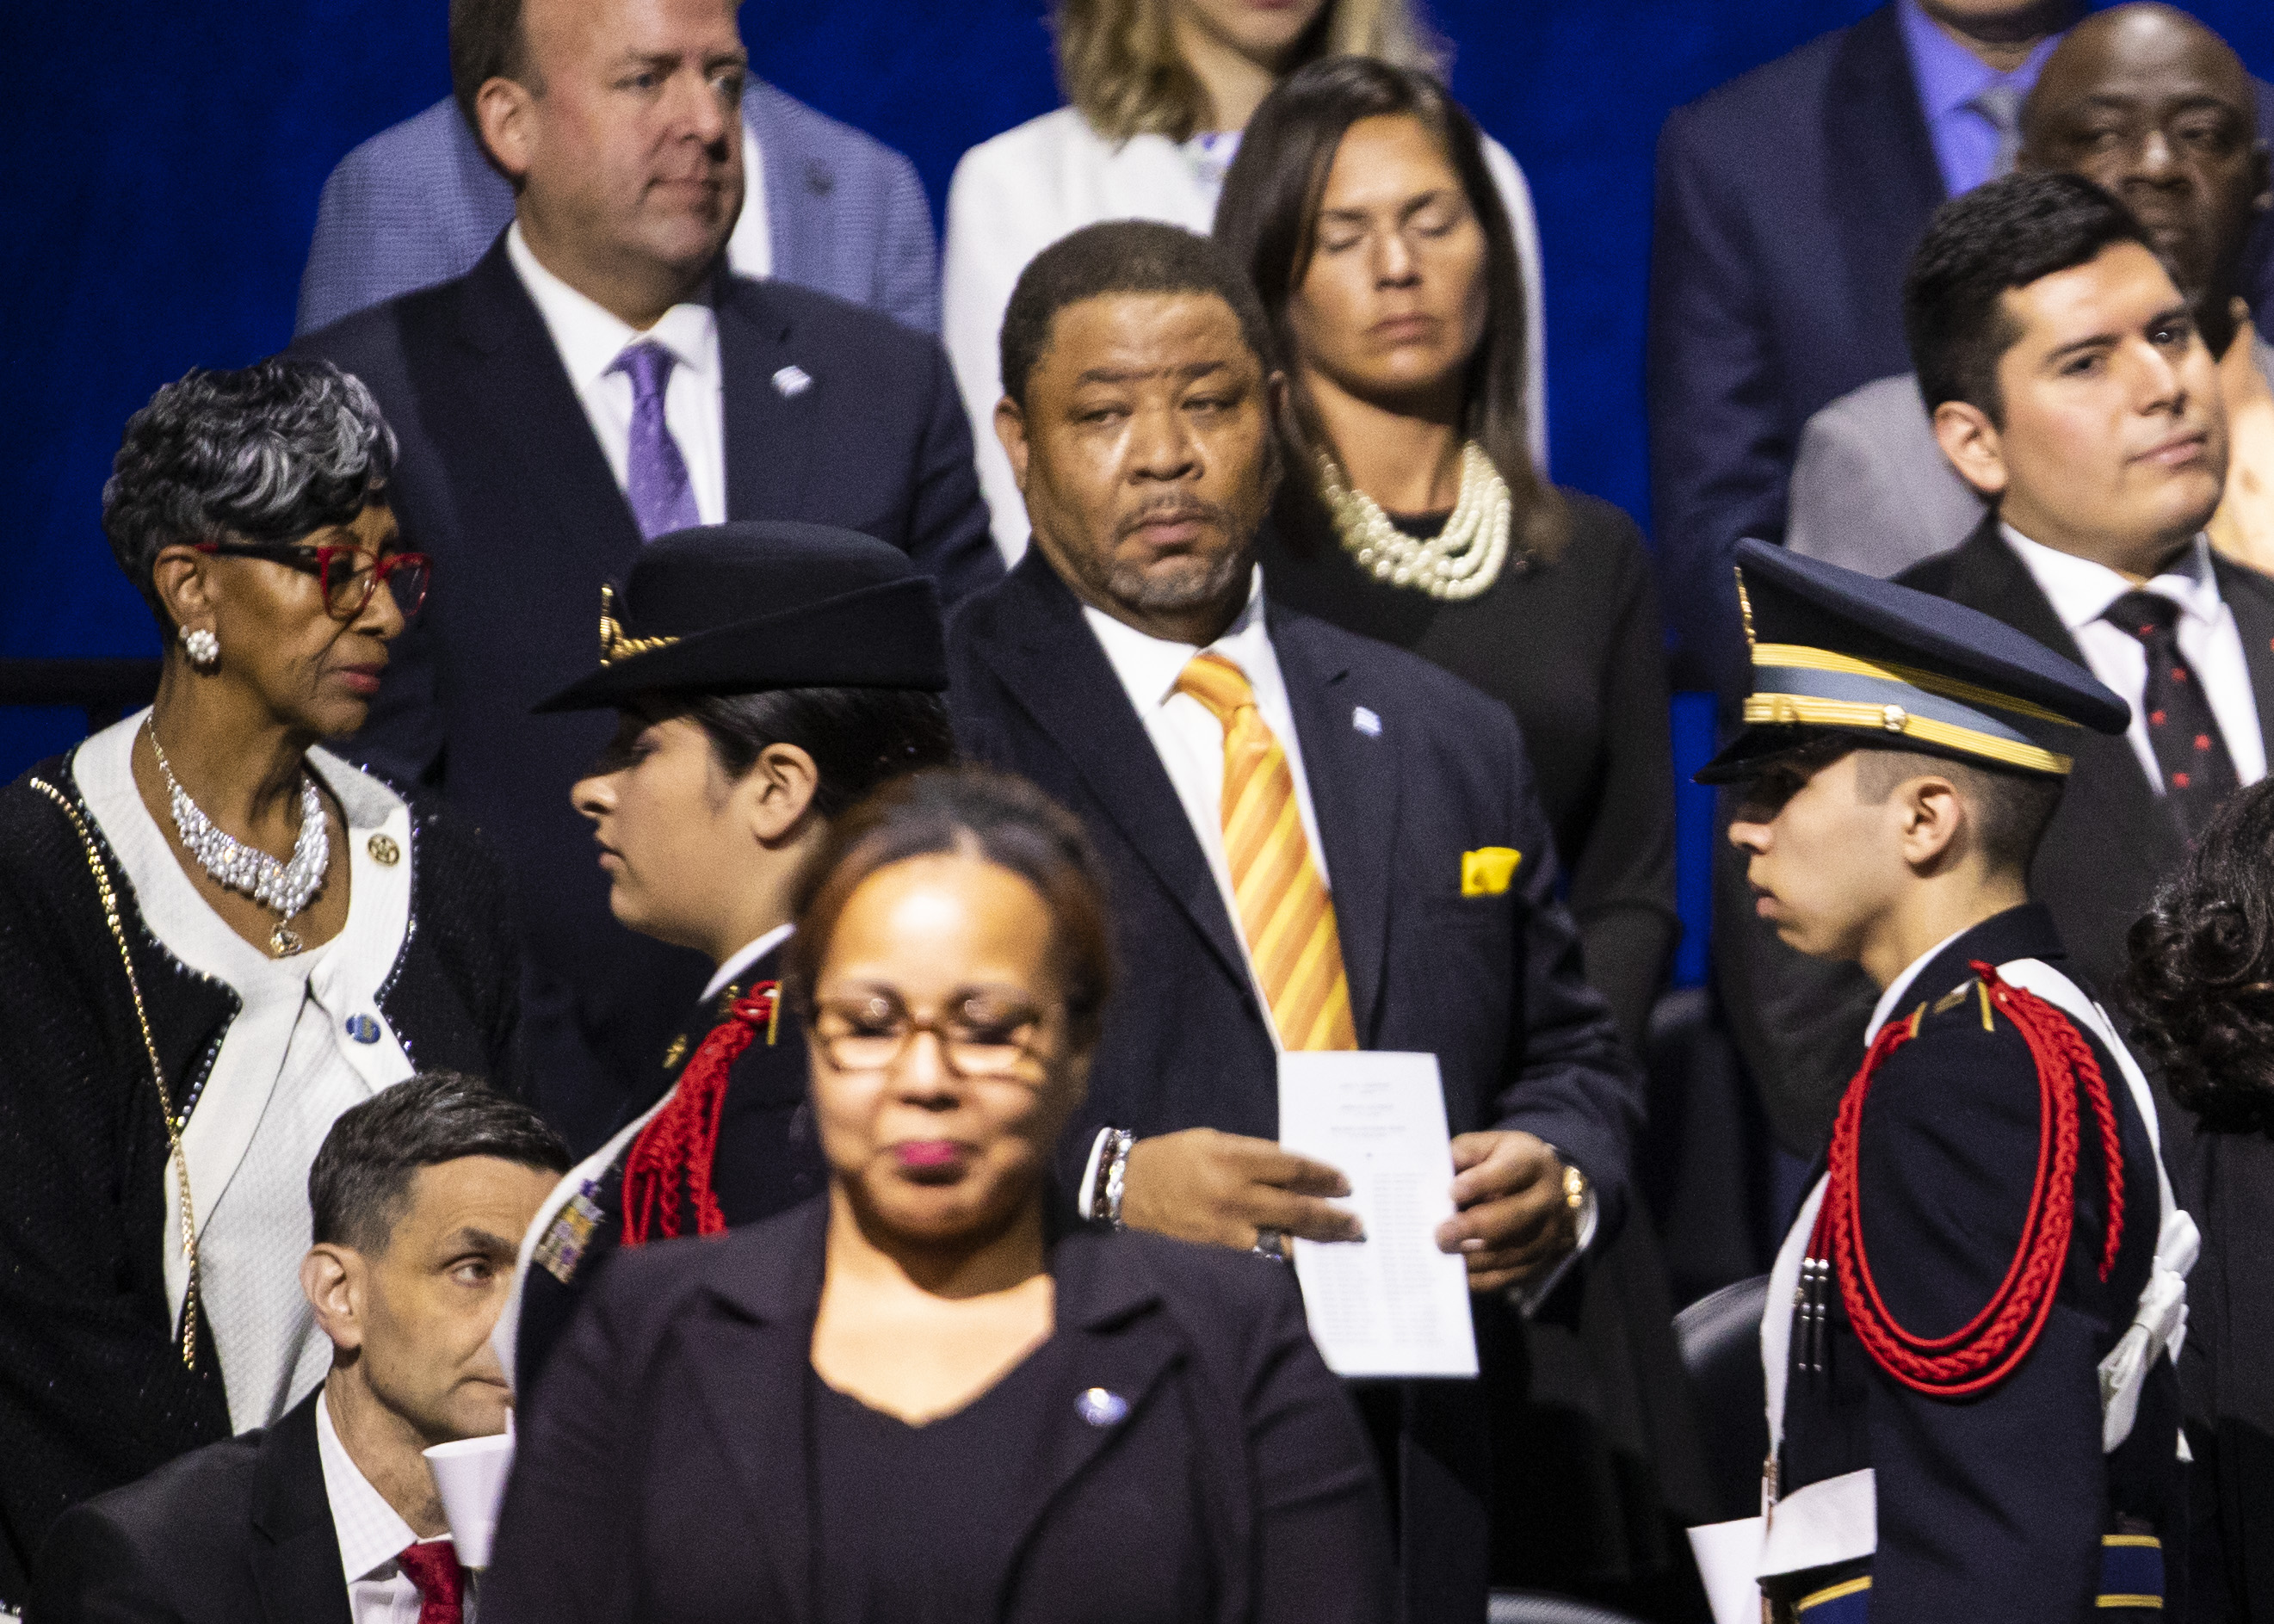 Ald. Carrie Austin (34th) and her chief of staff, Chester Wilson Jr. (center, yellow tie), at the May 20 inauguration of Mayor Lori Lightfoot.